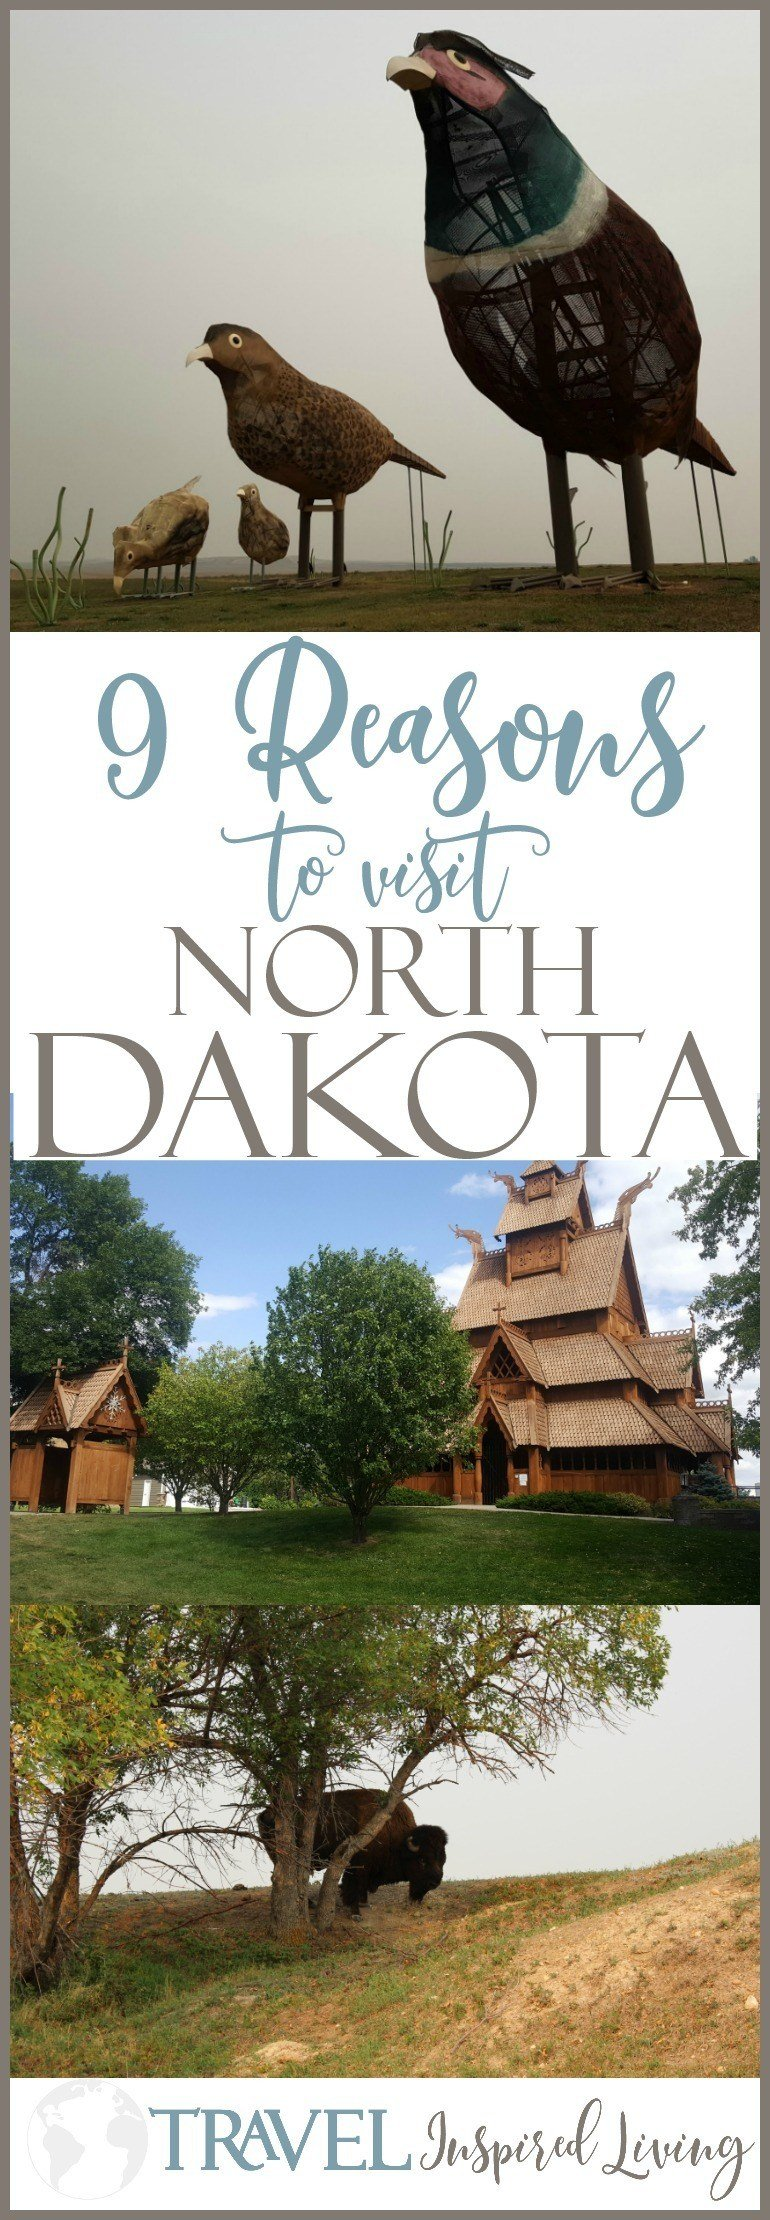 9 reasons to visit north dakota